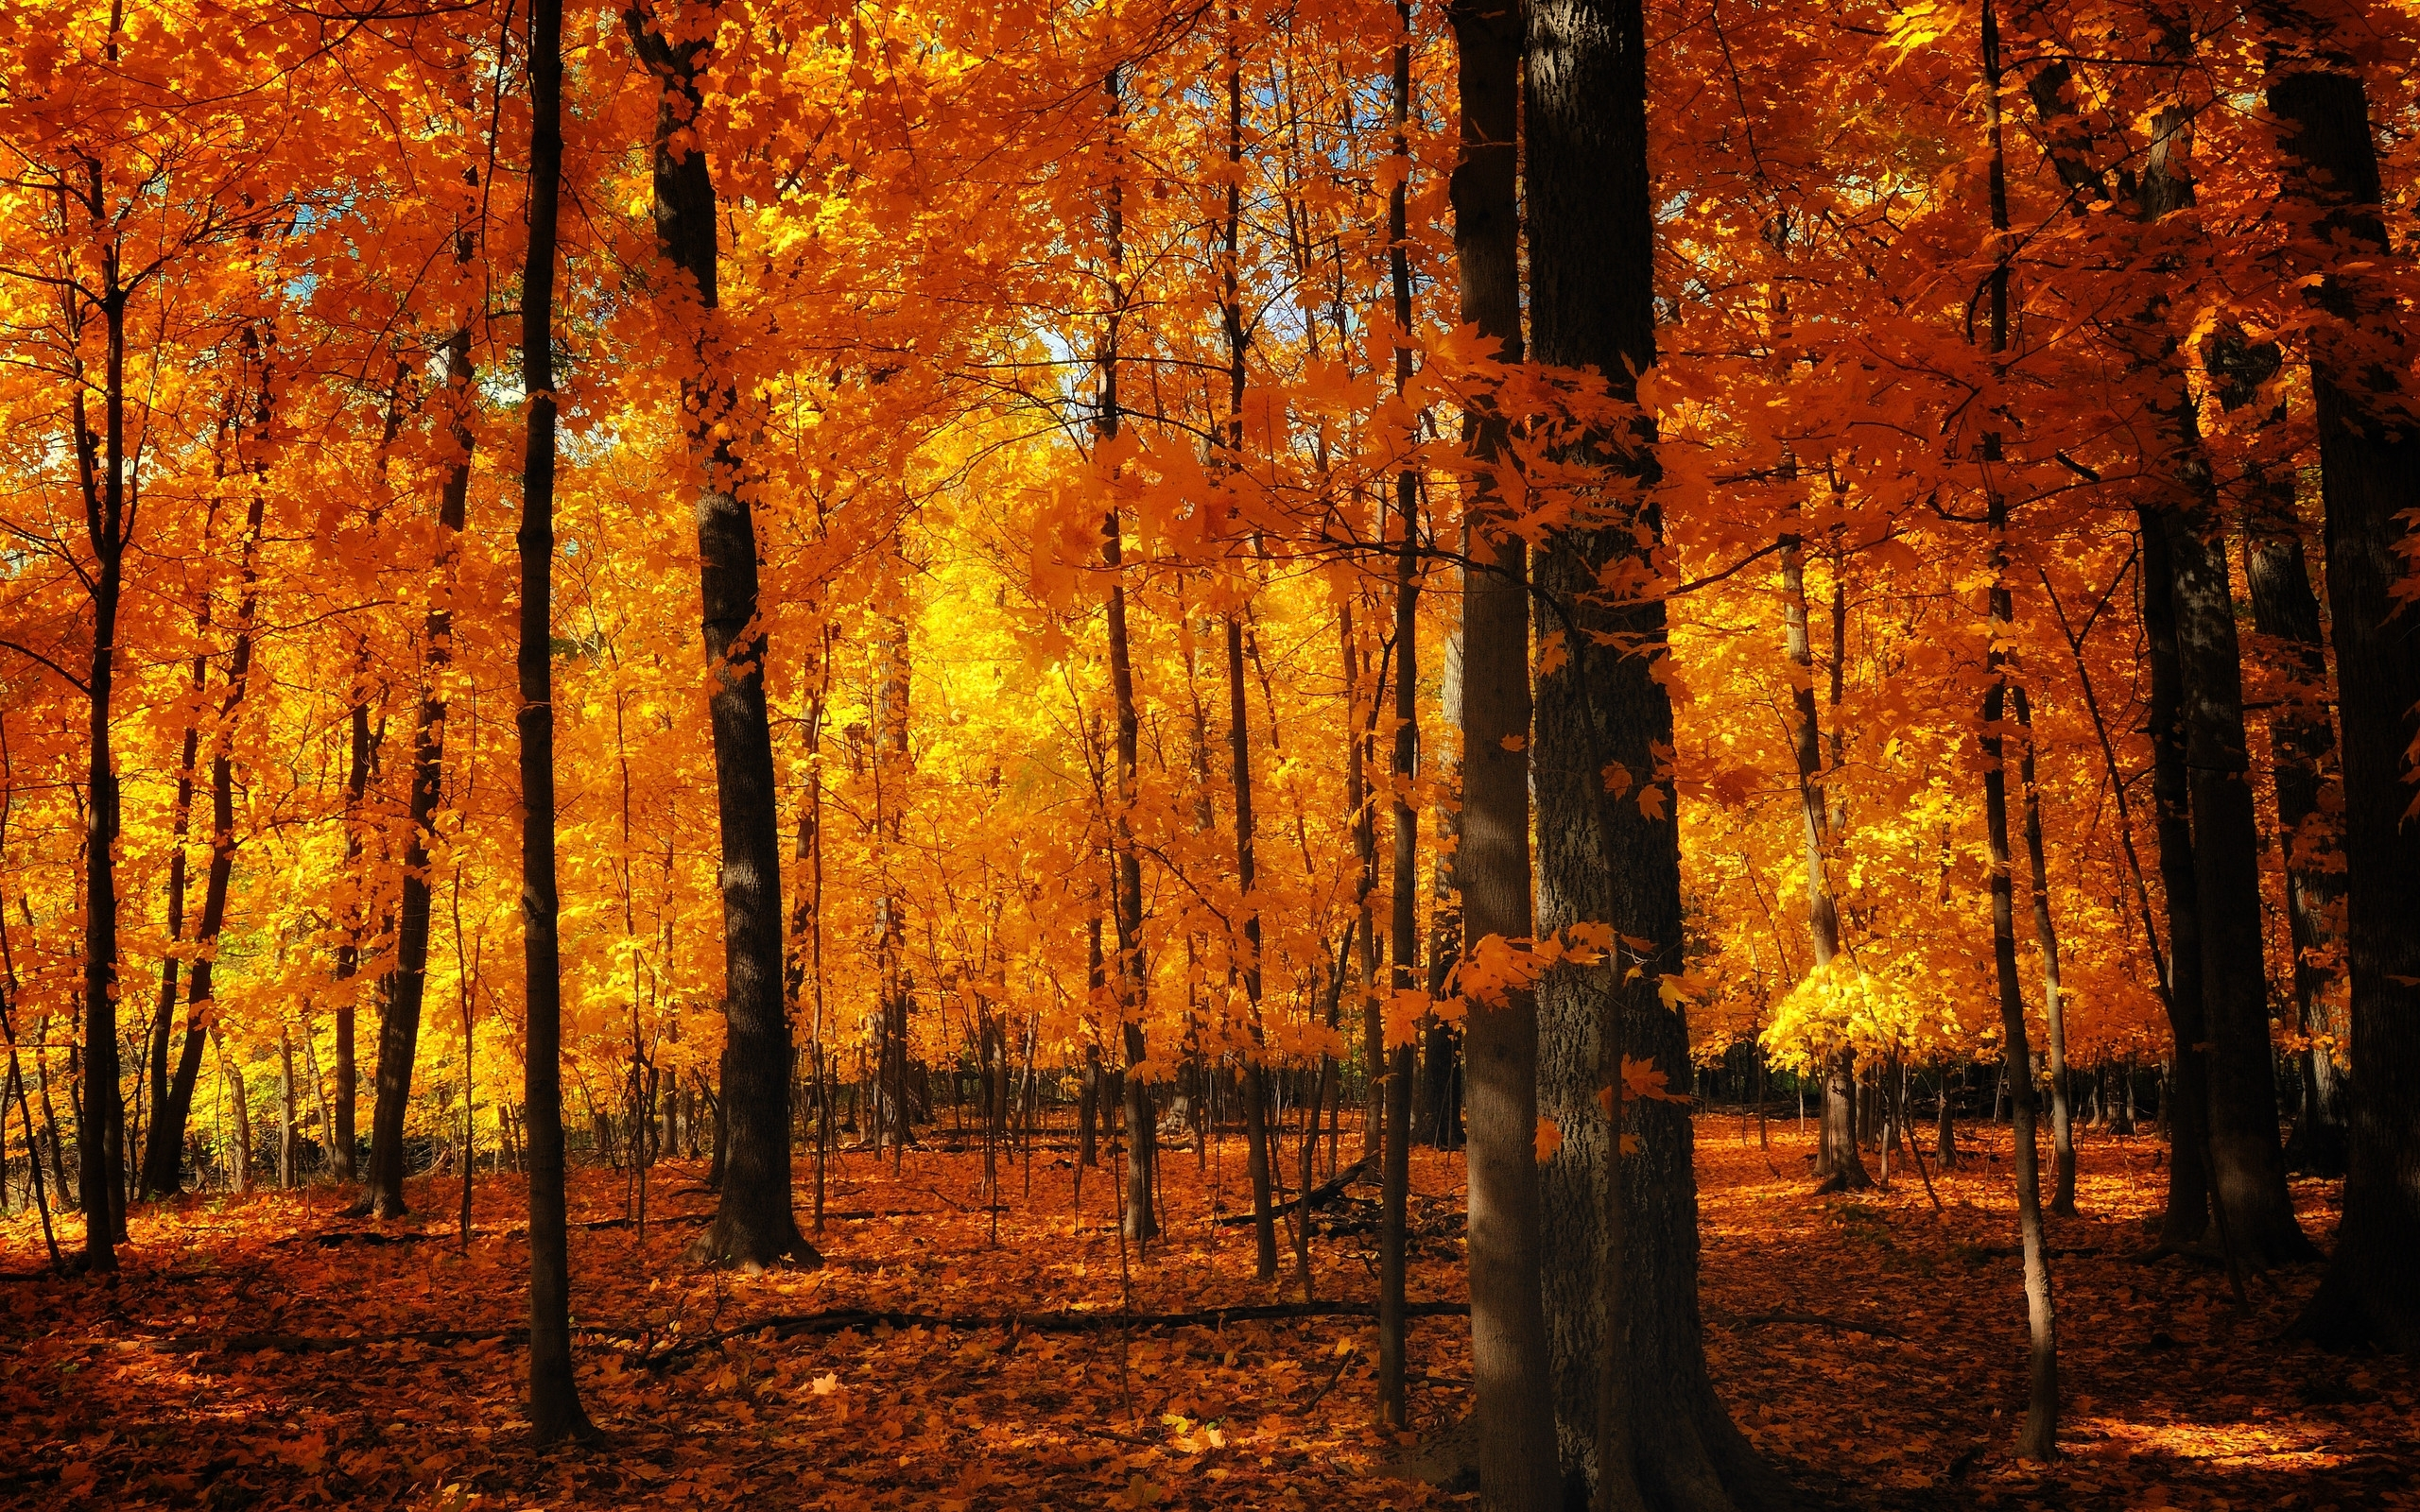 37 desktop images of autumn forest | autumn forest wallpapers